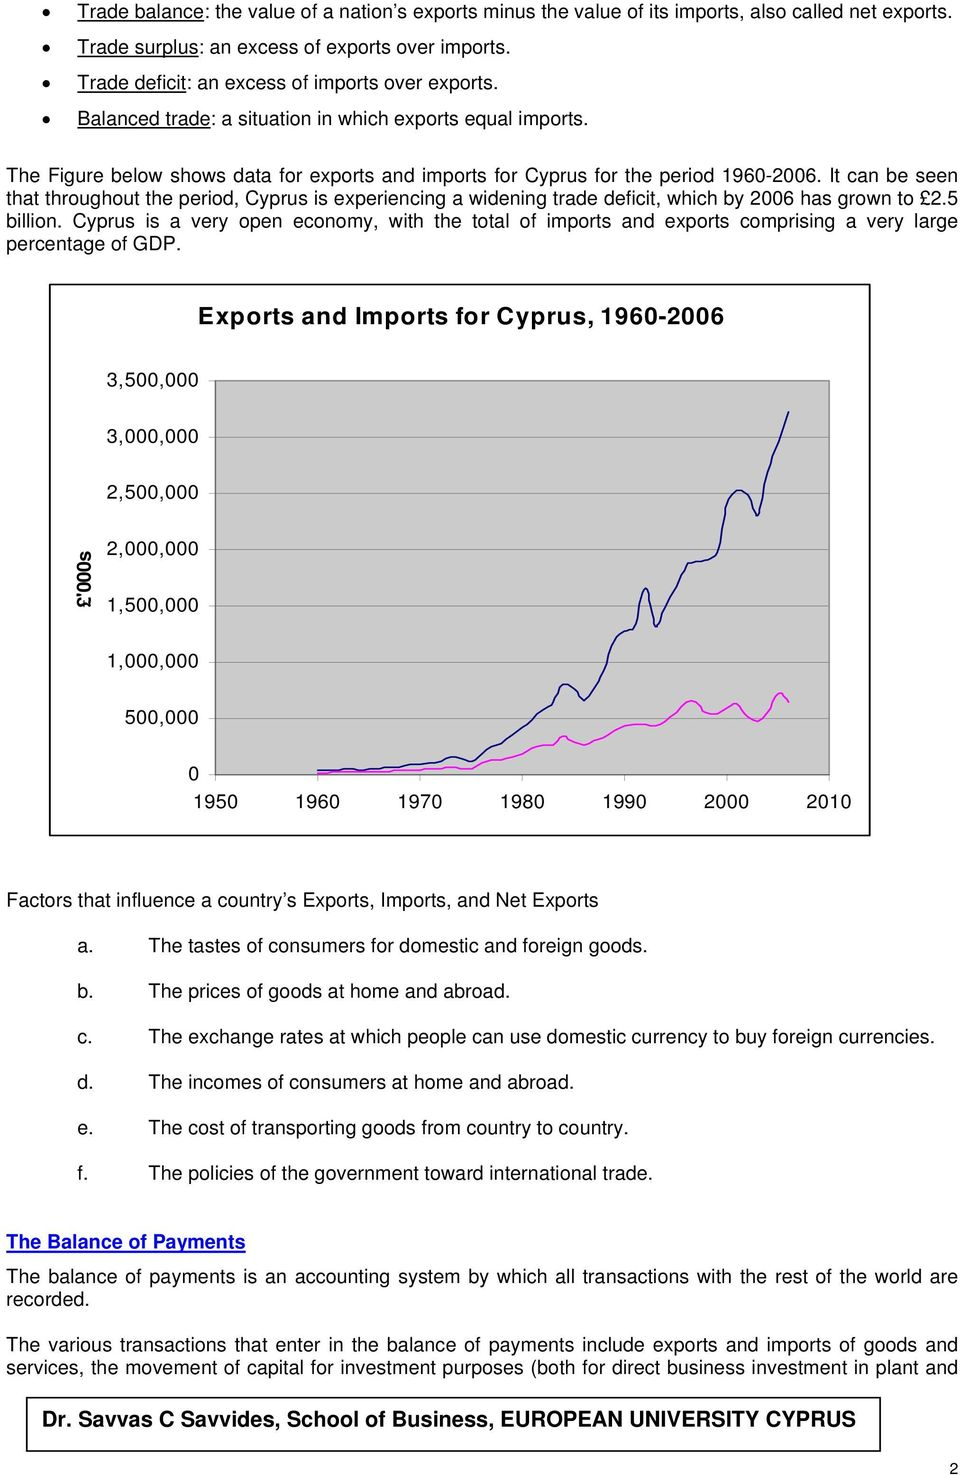 It can be seen that throughout the period, Cyprus is experiencing a widening trade deficit, which by 2006 has grown to 2.5 billion.